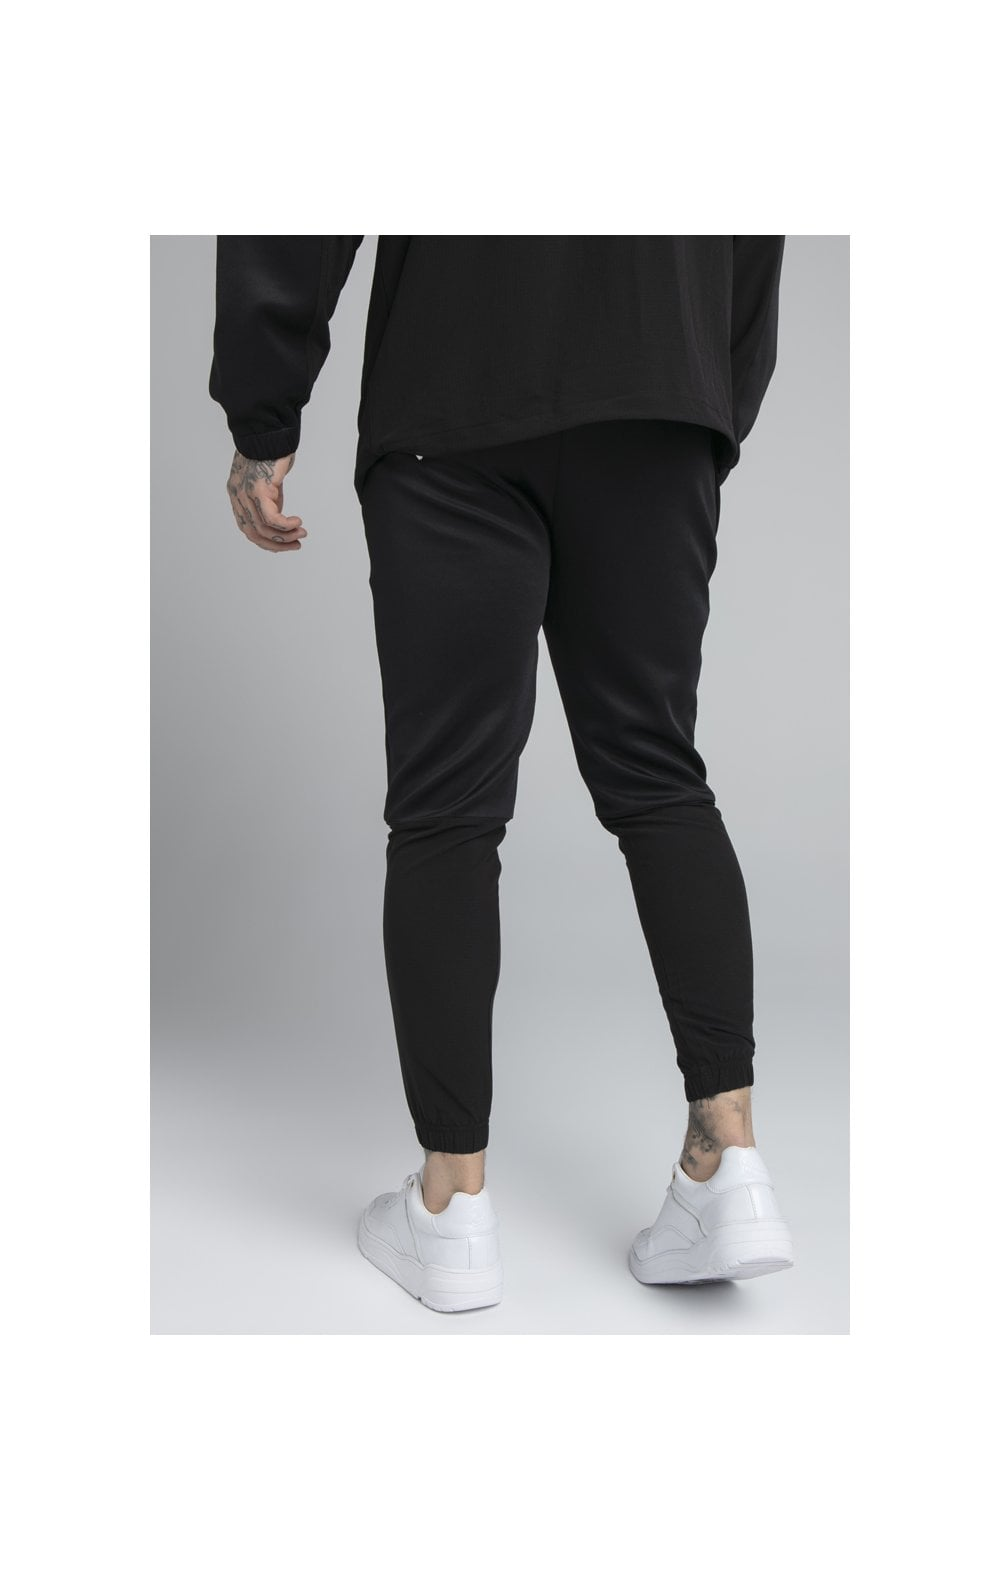 SikSilk Tranquil Training Pants - Black & Grey (1)